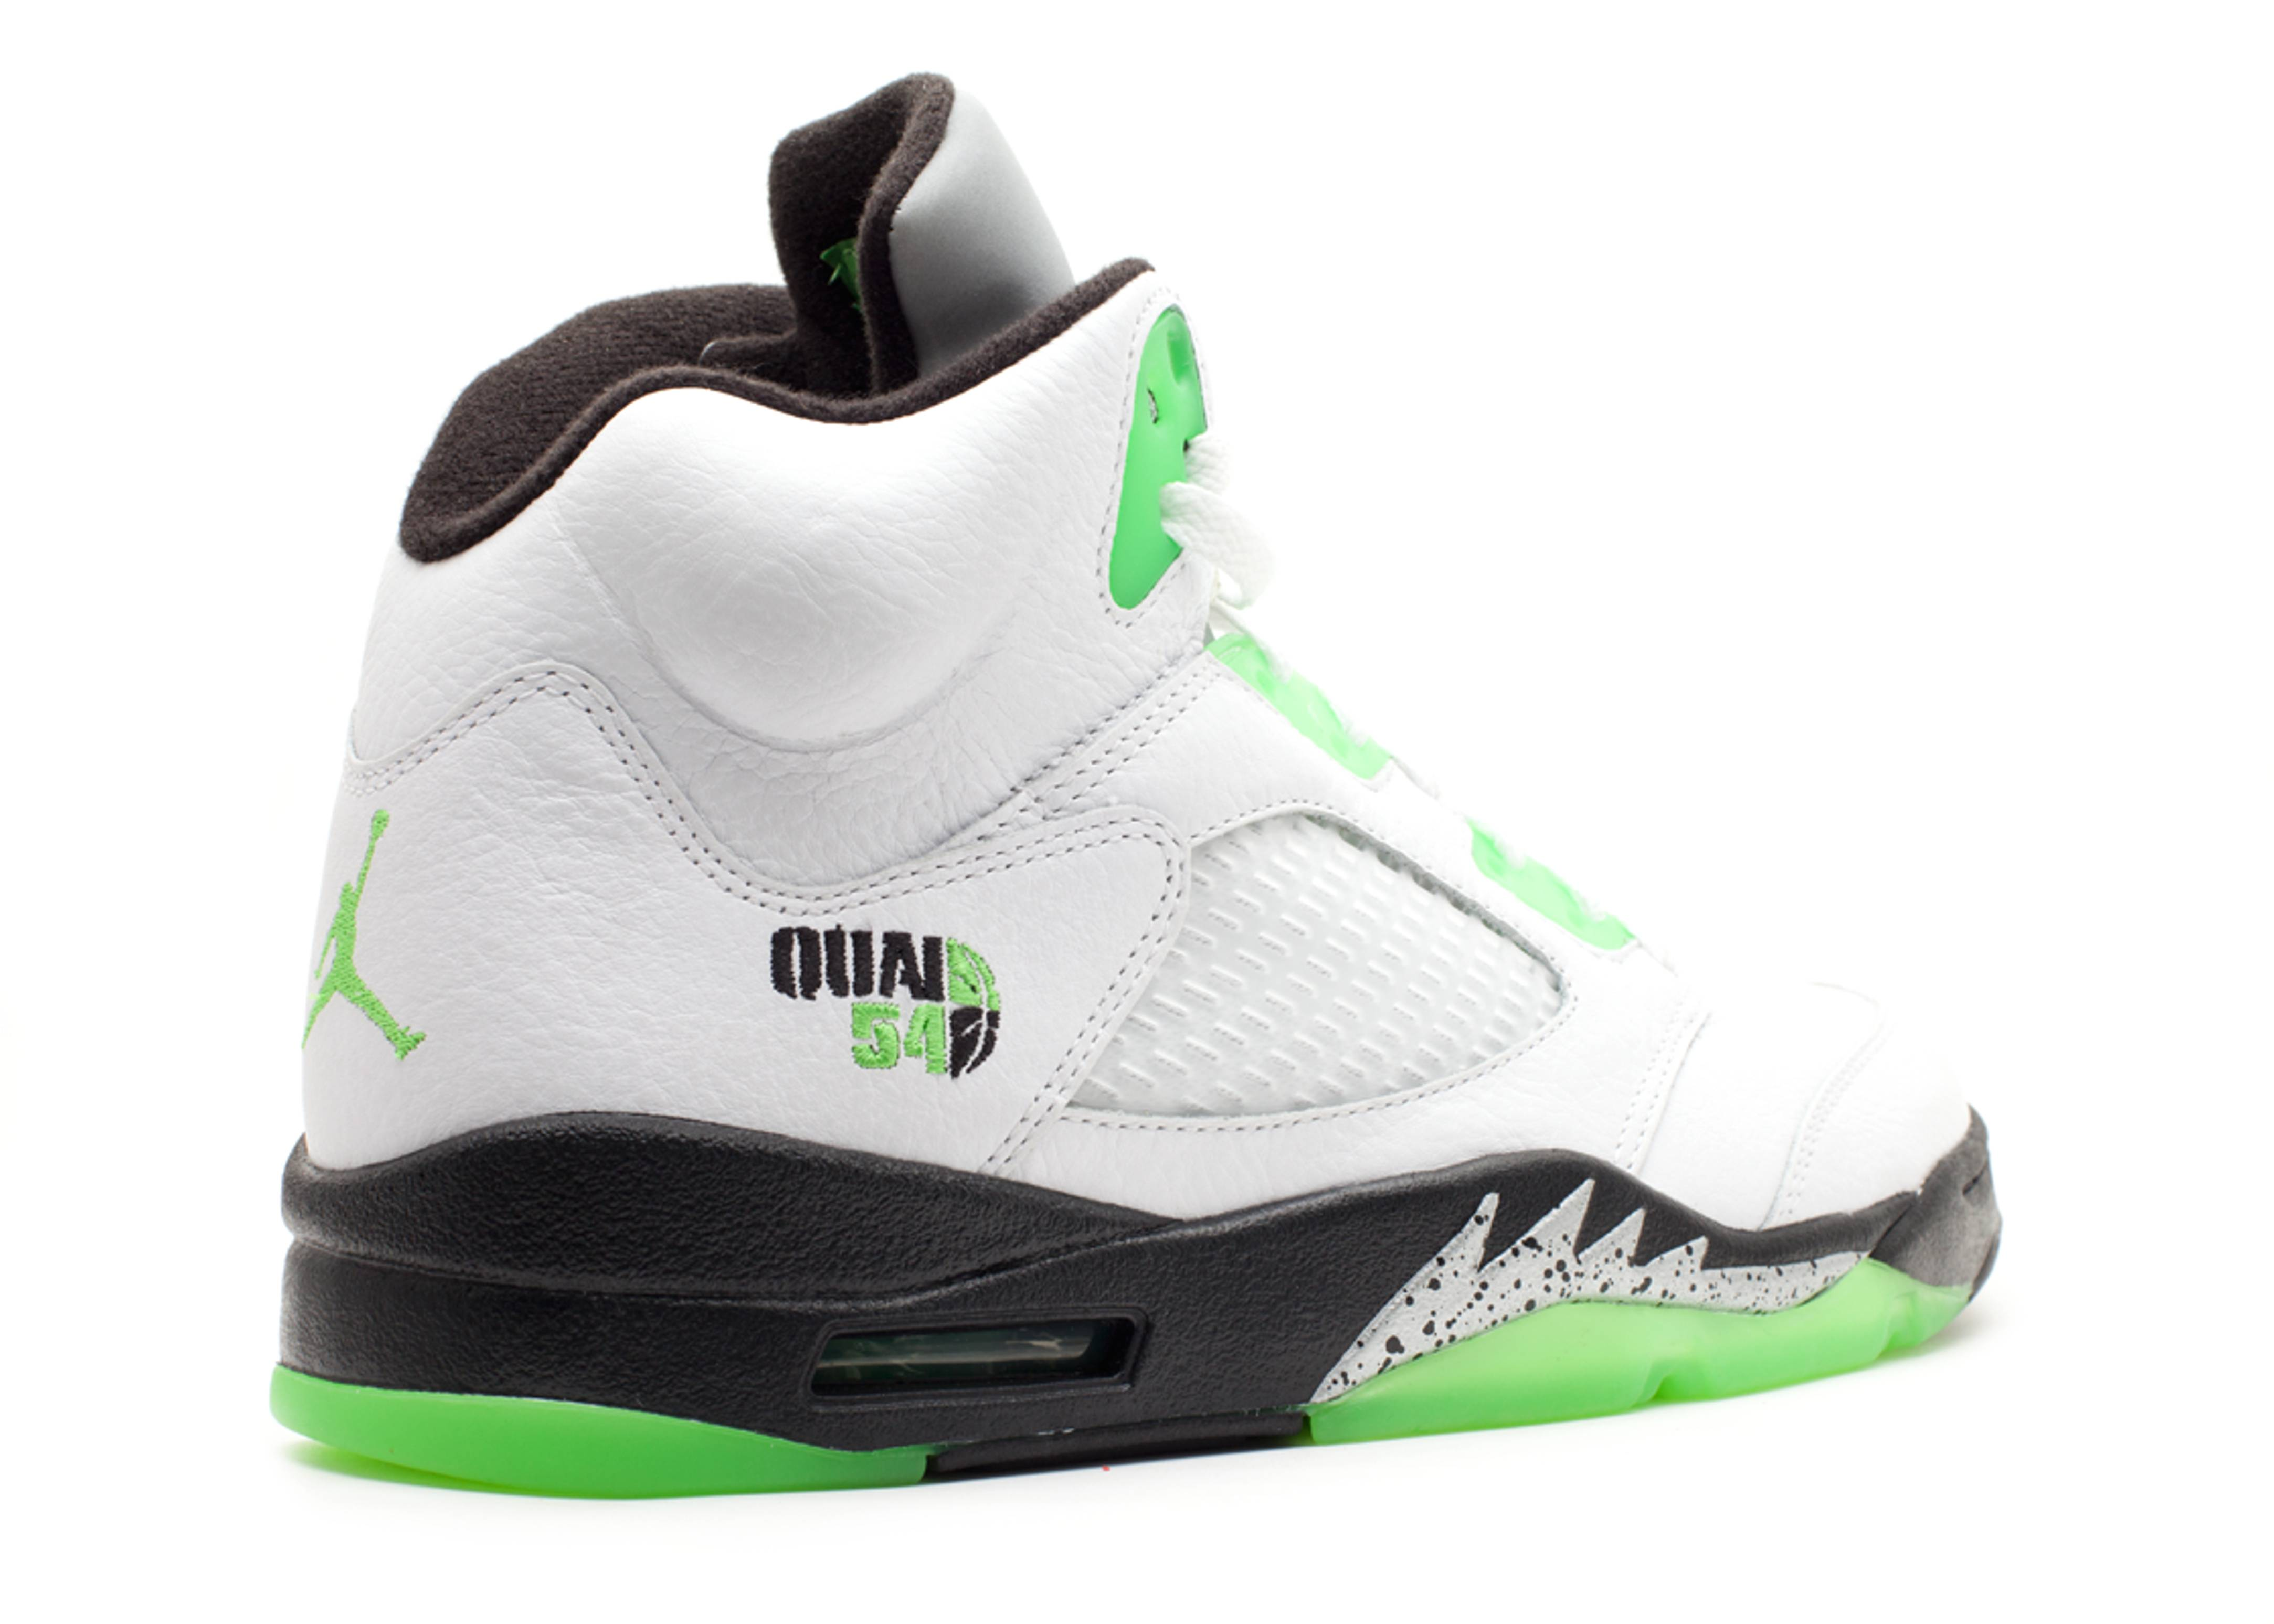 premium selection c0b11 07d1b ... czech air jordan 5 retro q54 quai 54 air jordan 467827 105 white rdnt  grn blk